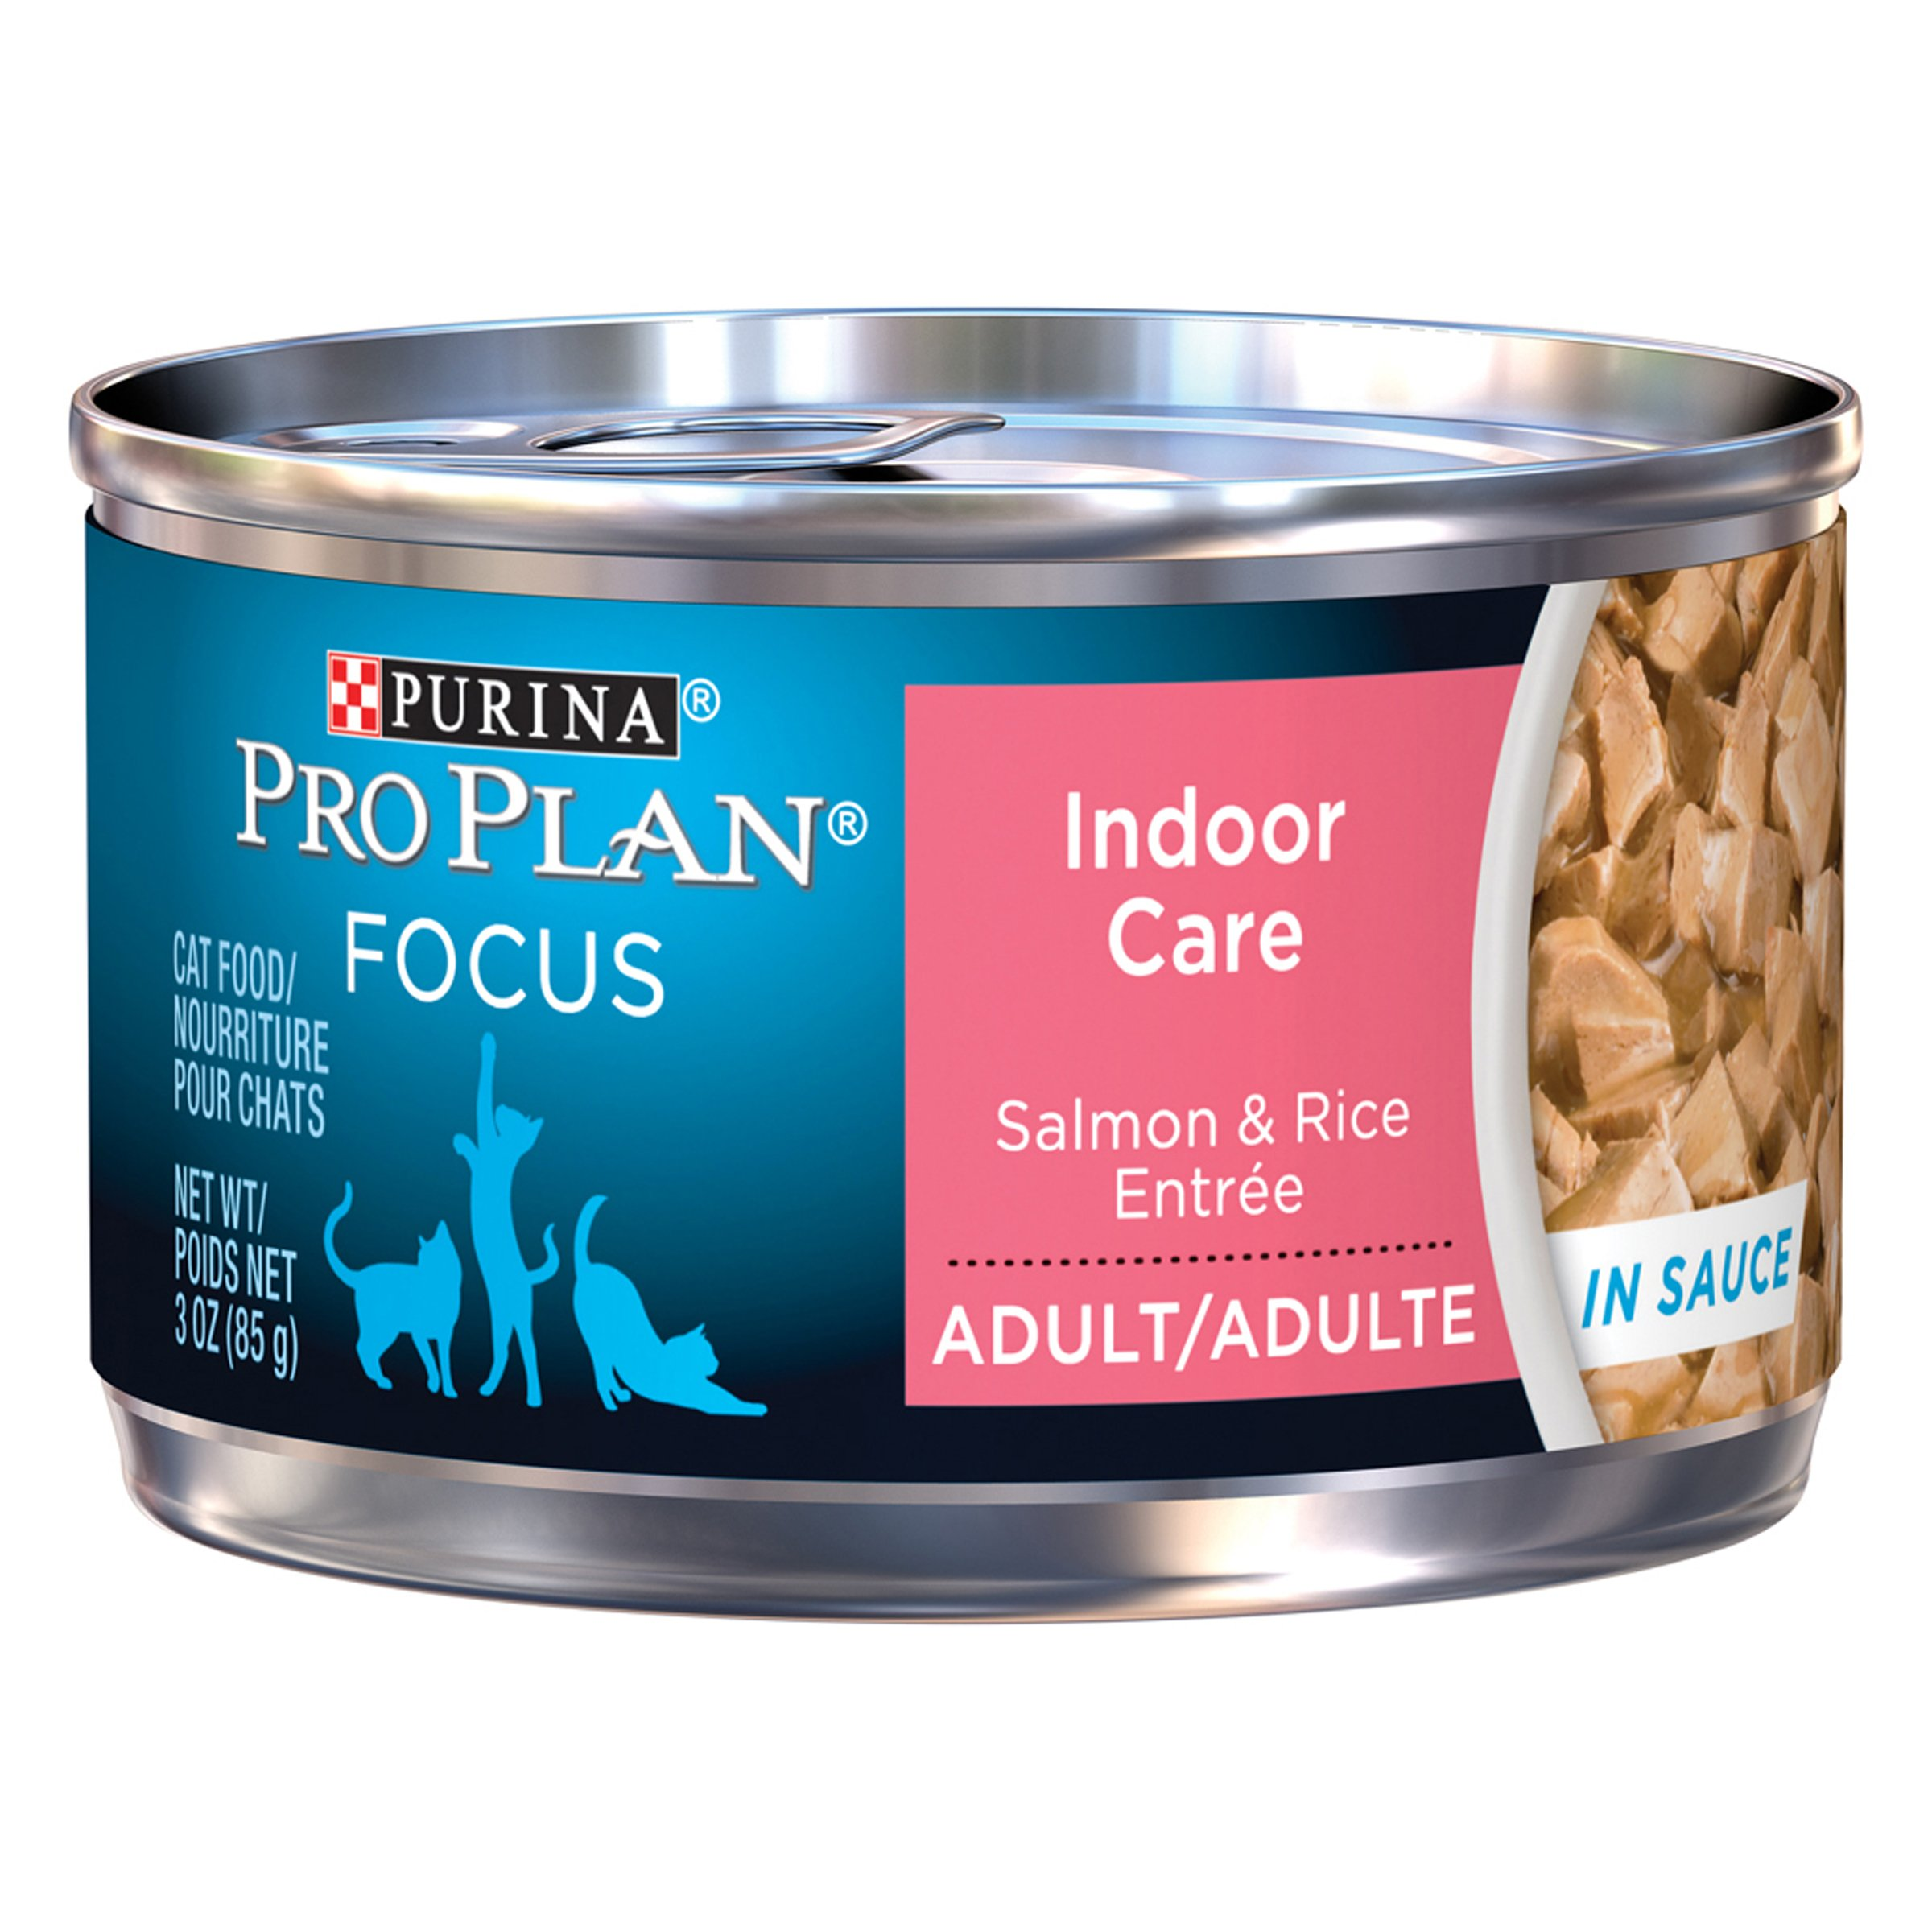 Purina Pro Plan Wet Cat Food, Focus, Adult Indoor Care Salmon and Rice Entre, 3-Ounce Can, Pack of 24